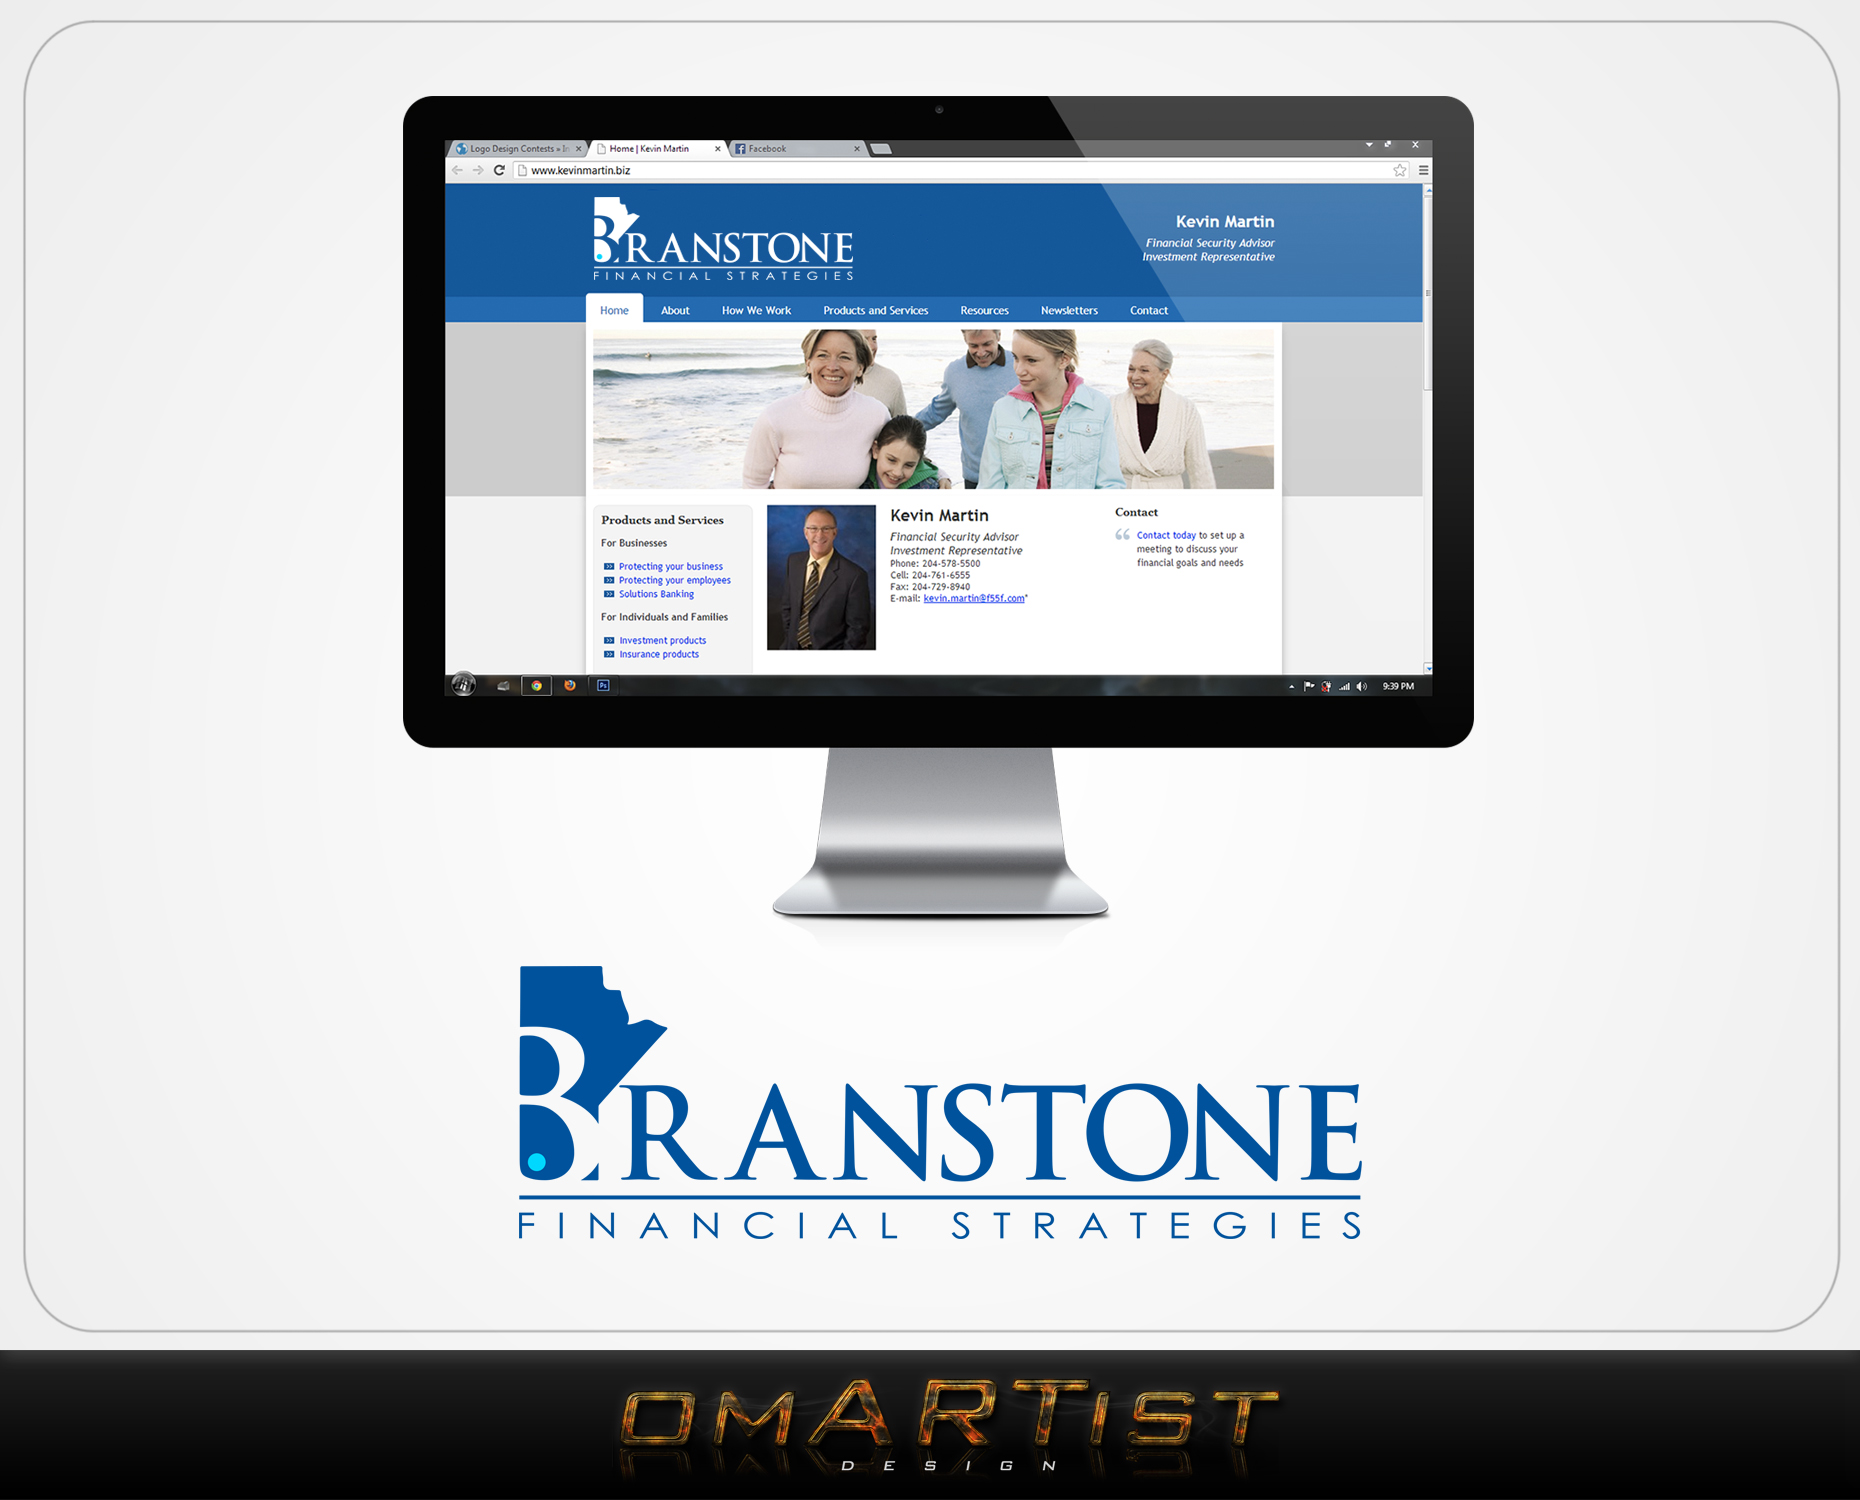 Logo Design by omARTist - Entry No. 71 in the Logo Design Contest Inspiring Logo Design for Branstone Financial Strategies.